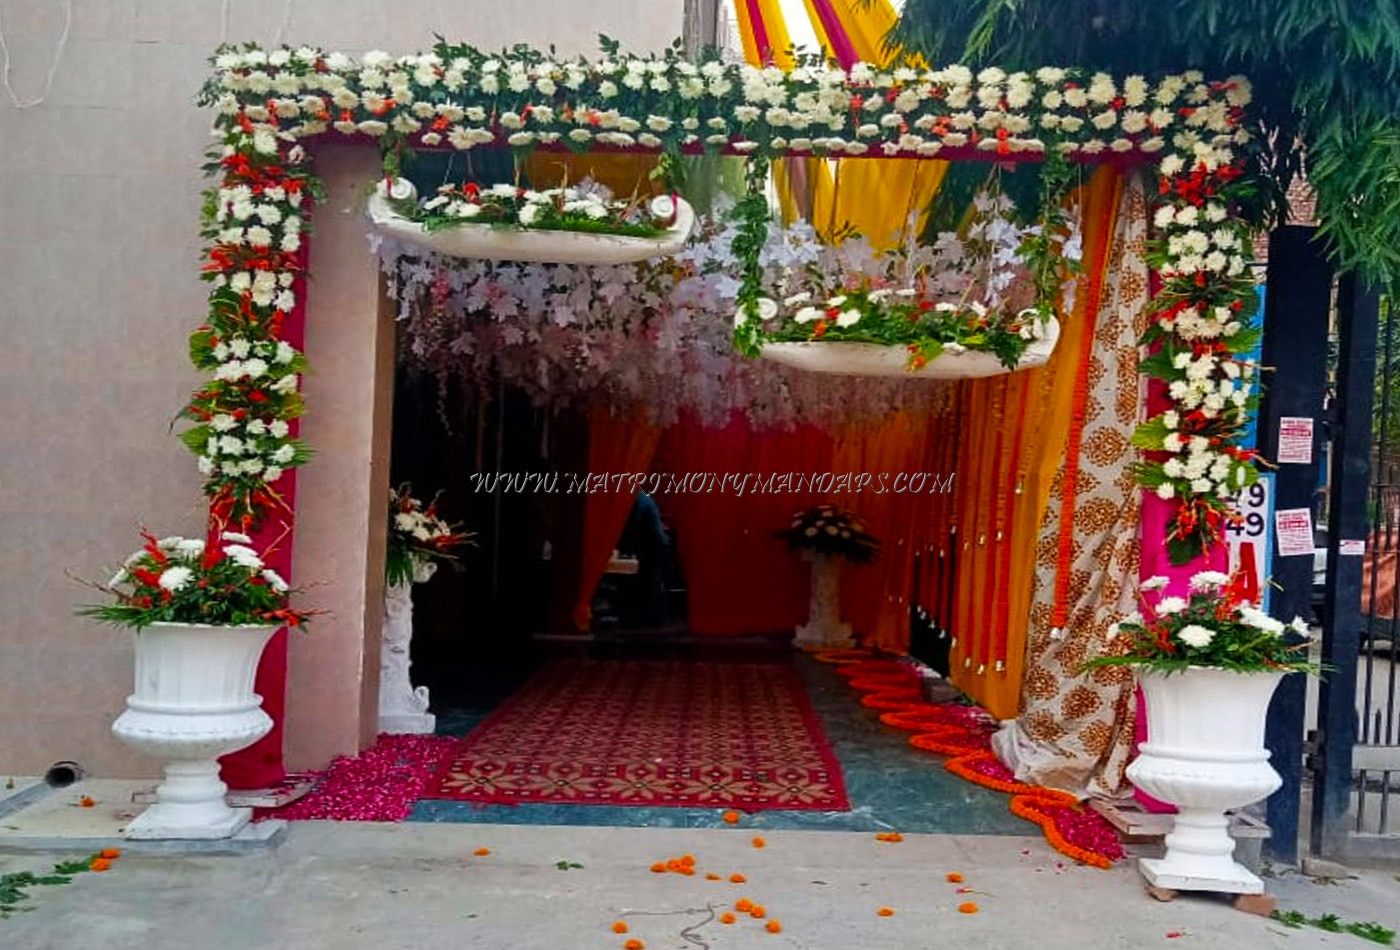 Find More Banquet Halls in Rohini